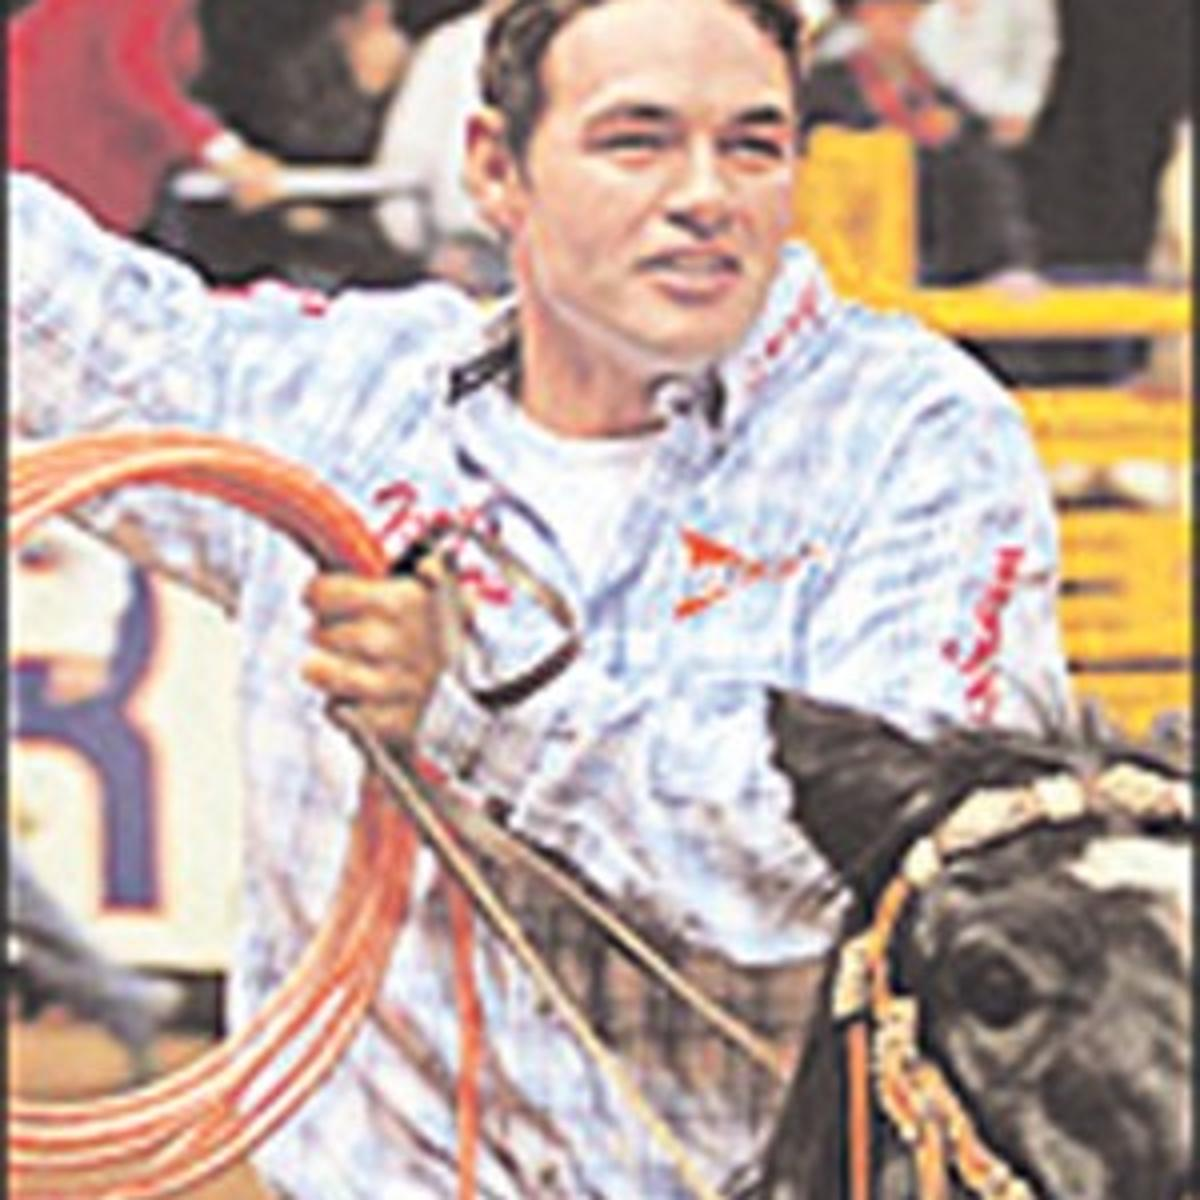 After one-year absence, Clay Tryan returns to the NFR